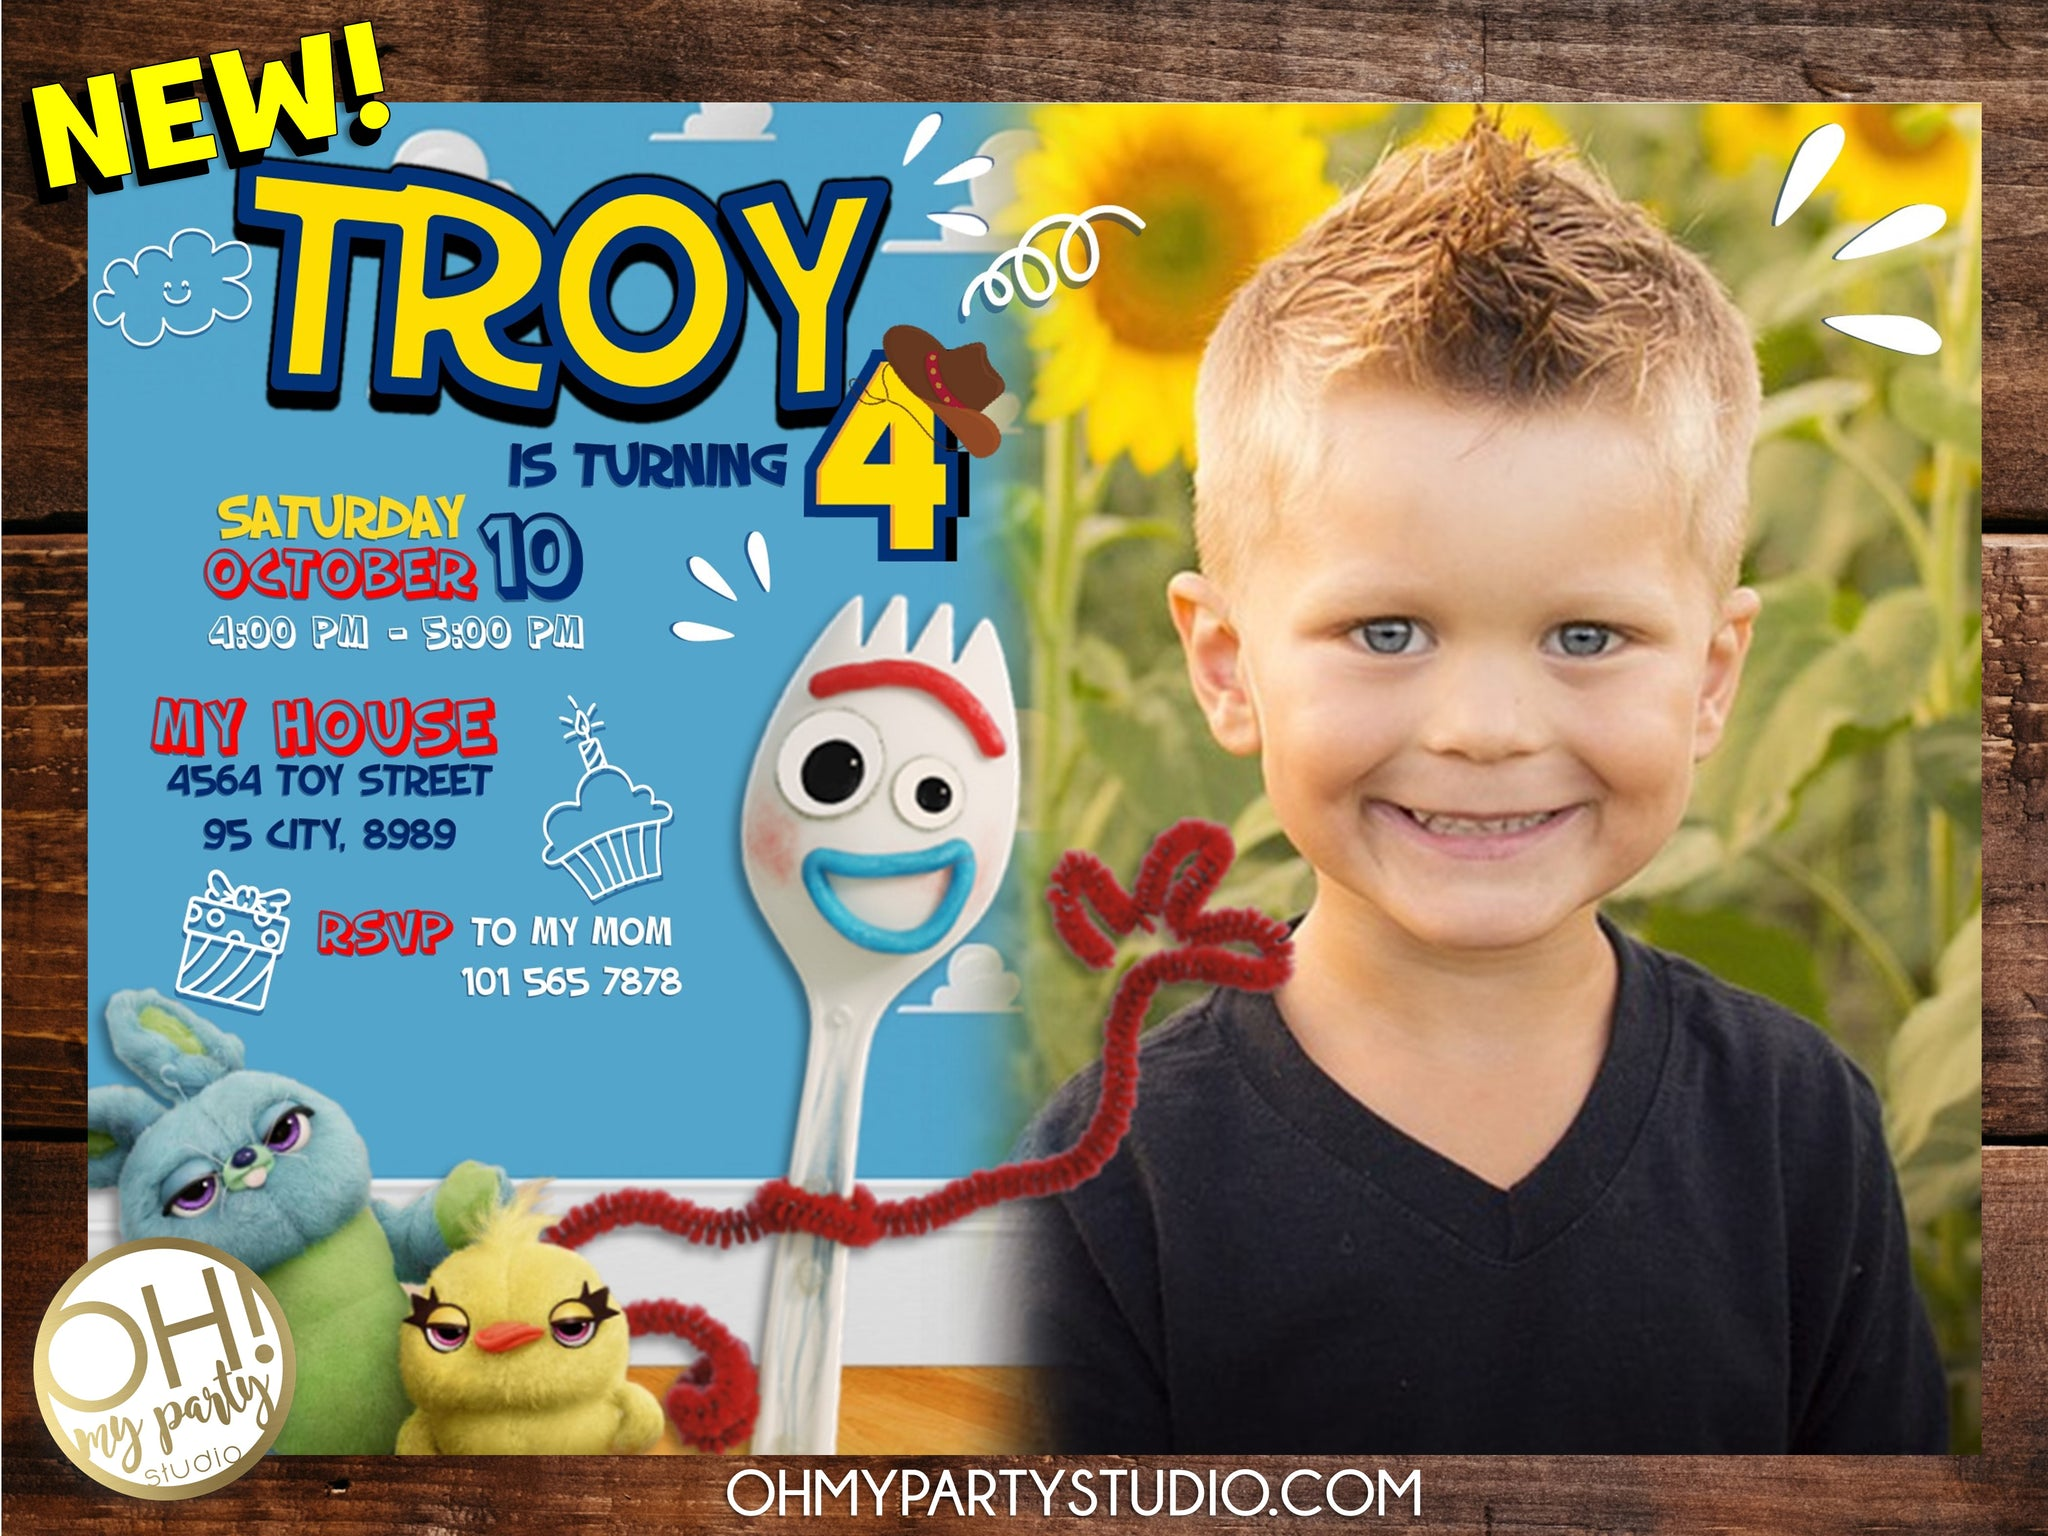 FORKY INVITE, FORKY INVITATION, TOY STORY 4 BIRTHDAY INVITATION, TOY STORY BIRTHDAY INVITATION, TOY STORY PARTY, TOY STORY BIRTHDAY, TOY STORY BIRTHDAY PARTY,TOY STORY 4 PARTY IDEAS, TOY STORY 4 BIRTHDAY PARTY, TOY STORY 4 INVITE, TOY STORY 4 INVITATIONS, TOY STORY 4 BIRTHDAY PARTY INVITATIONS, TOY STORY 4 FAVORS, TOY STORY 4 DECORATIONS, TOY STORY 4 PARTY DECORATIONS, TOY STORY 4 INVITACIONES, TOY STORY 4 INVITACION, TOY STORY 4 INVITATION PRINTABLE, TOY STORY 4 BIRTHDAY, TOY STORY 4 PARTY